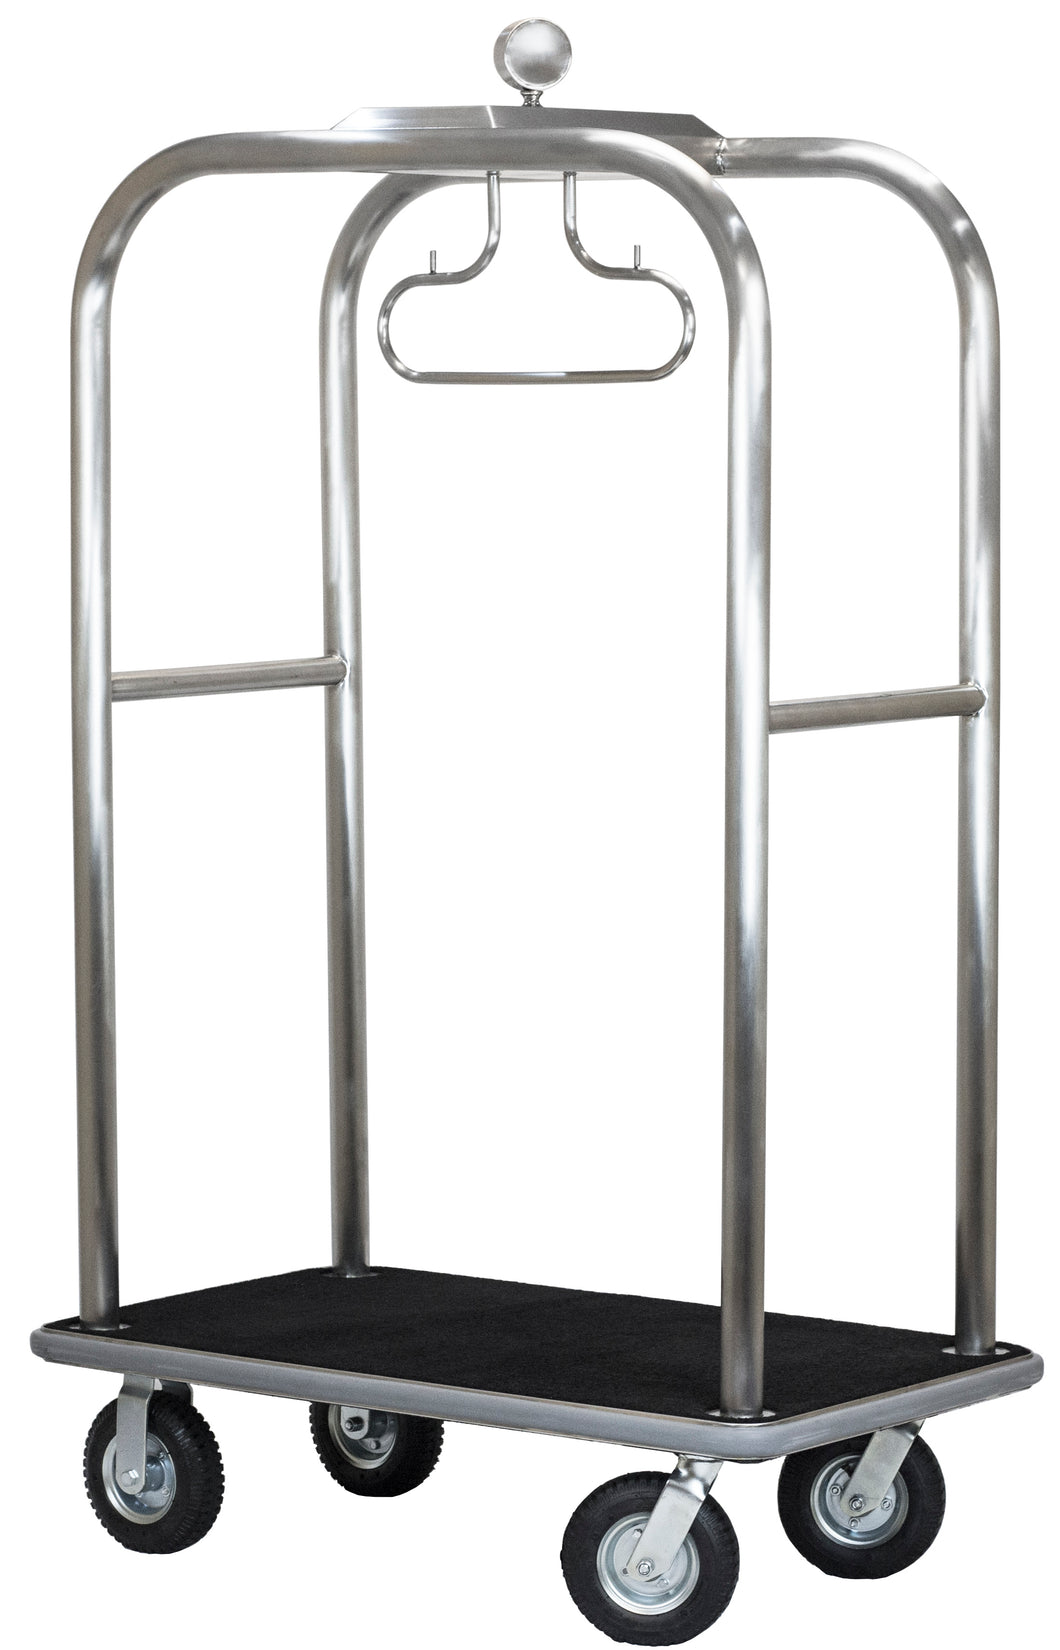 H1S Boardwalk Series Bellman's Cart - Brushed Stainless Steel